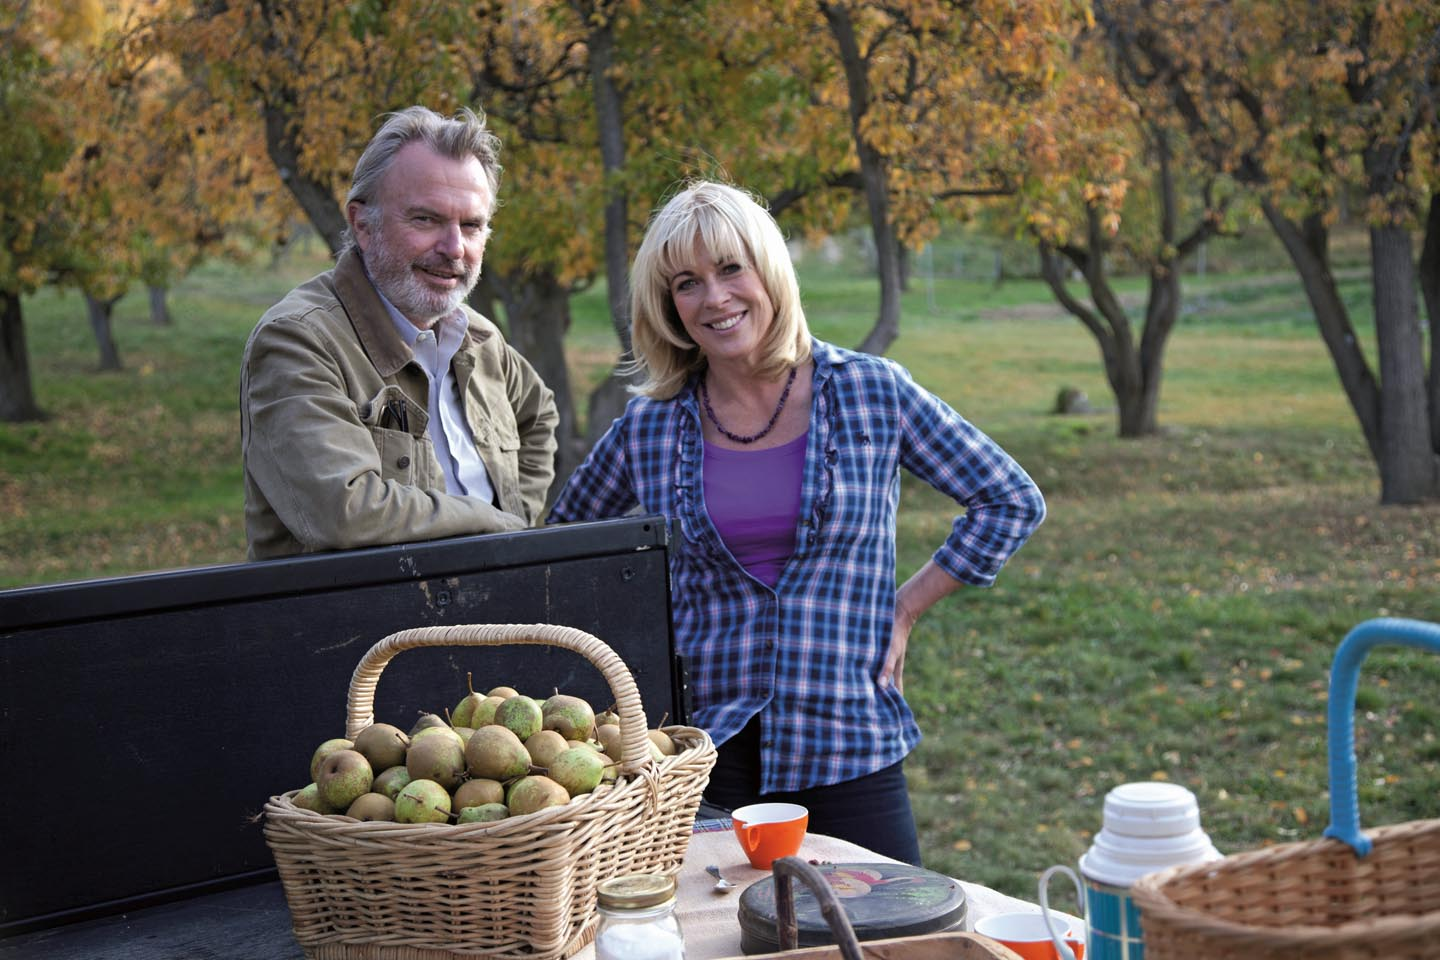 Annabel Langbein visits actor Sam Neill's Two Paddocks vineyard to harvest saffron and pick heritage pears, then invites him and his team to her cabin to try her modern take on classic Italian osso bucco and saffron risotto.